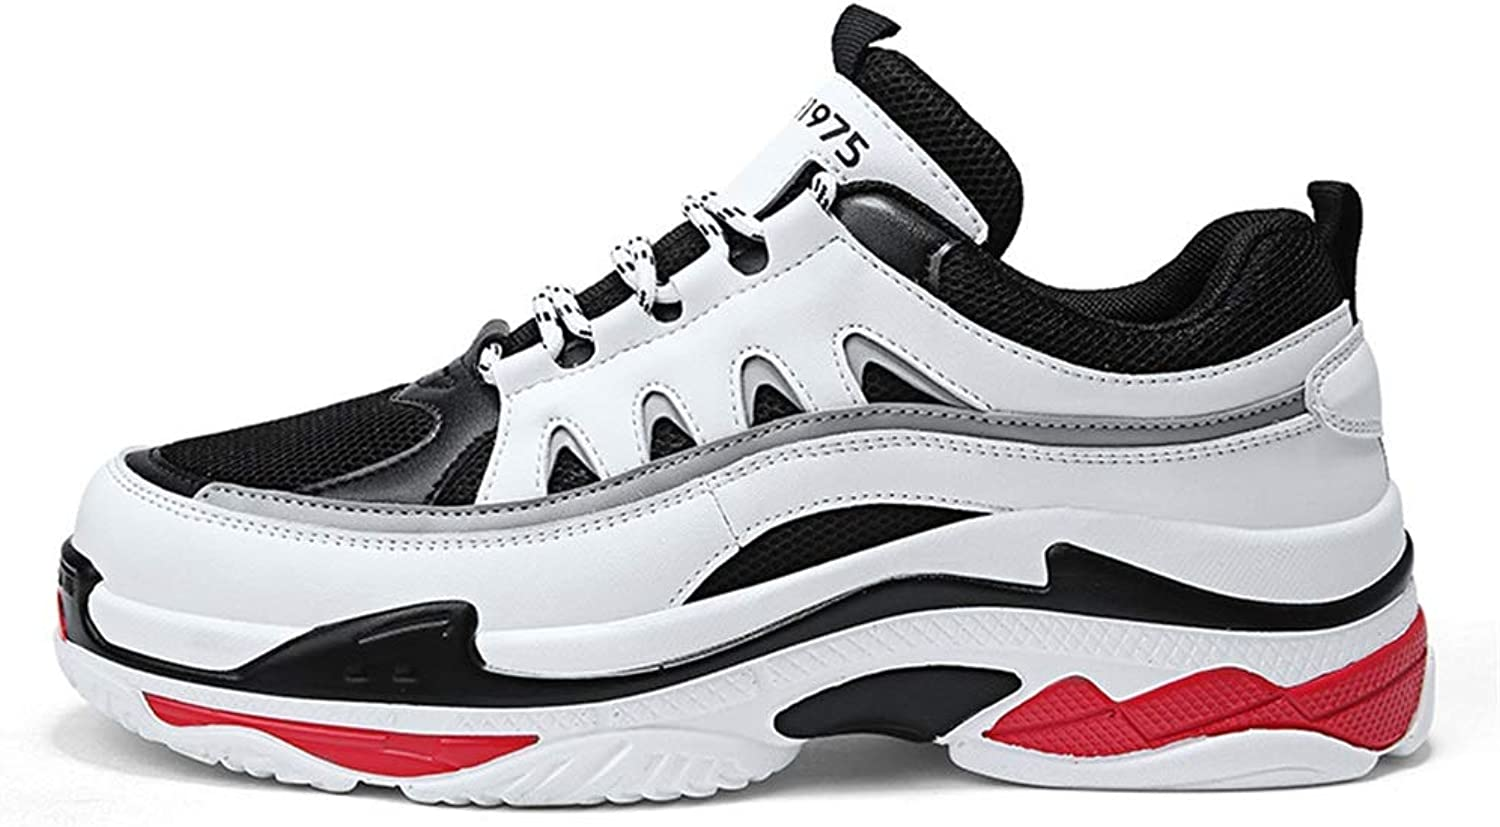 Men's shoes, Spring Fall Large Size Sports shoes Casual Student Running shoes Youth Platform shoes Comfort Athletic shoes Personality Sneakers shoes Light Soles (color   A, Size   43)